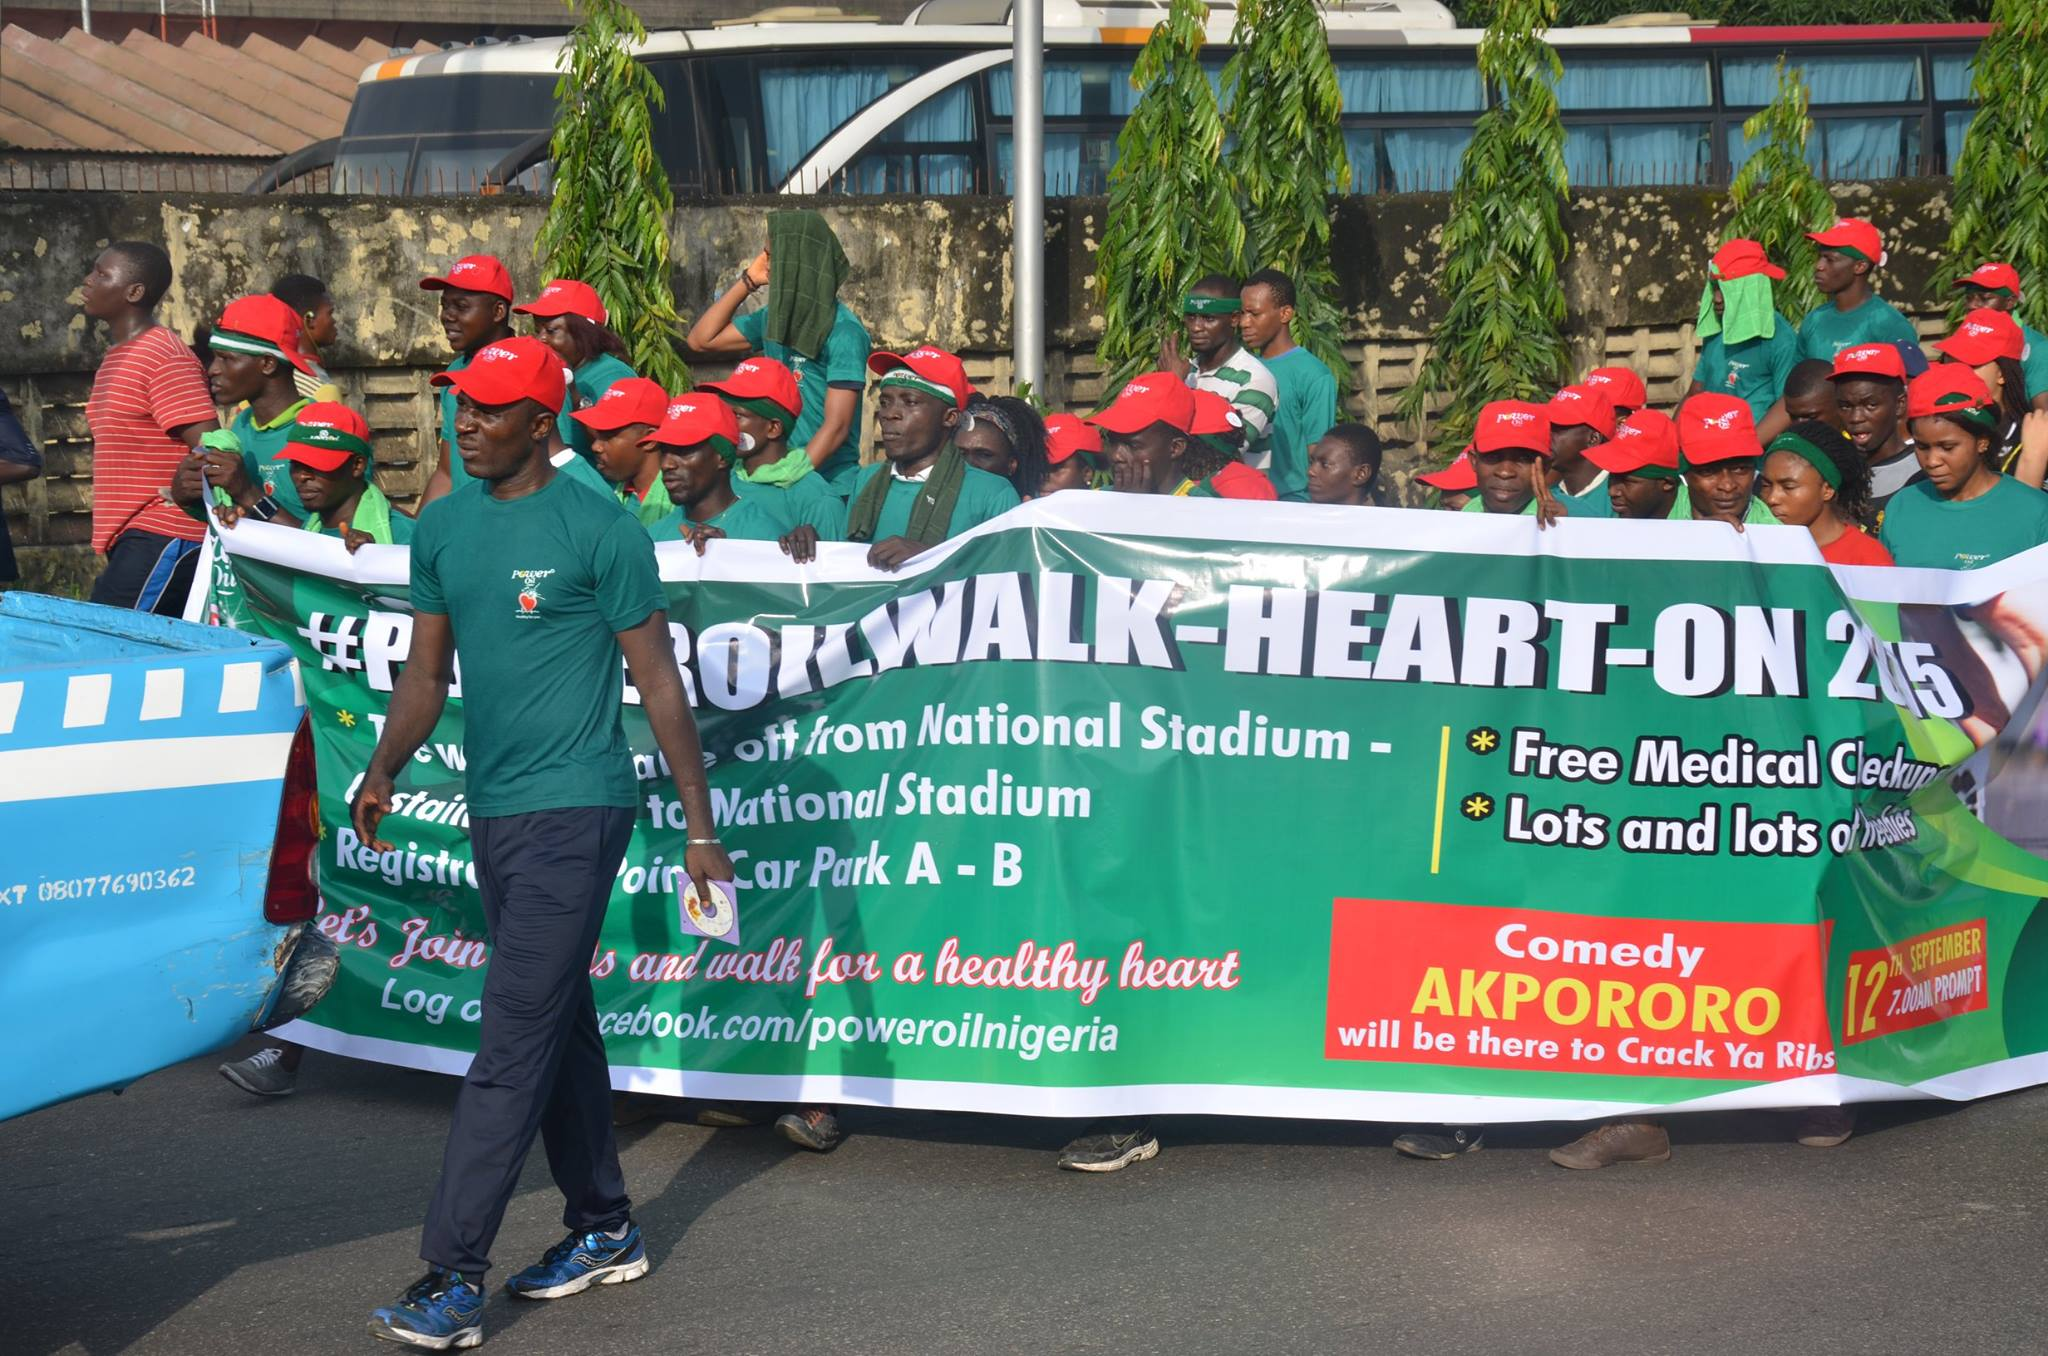 Power Oil Walkhearton 4.0 To Engage Consumers In Lagos, Ibadan, Benin, Enugu & Port Harcourt